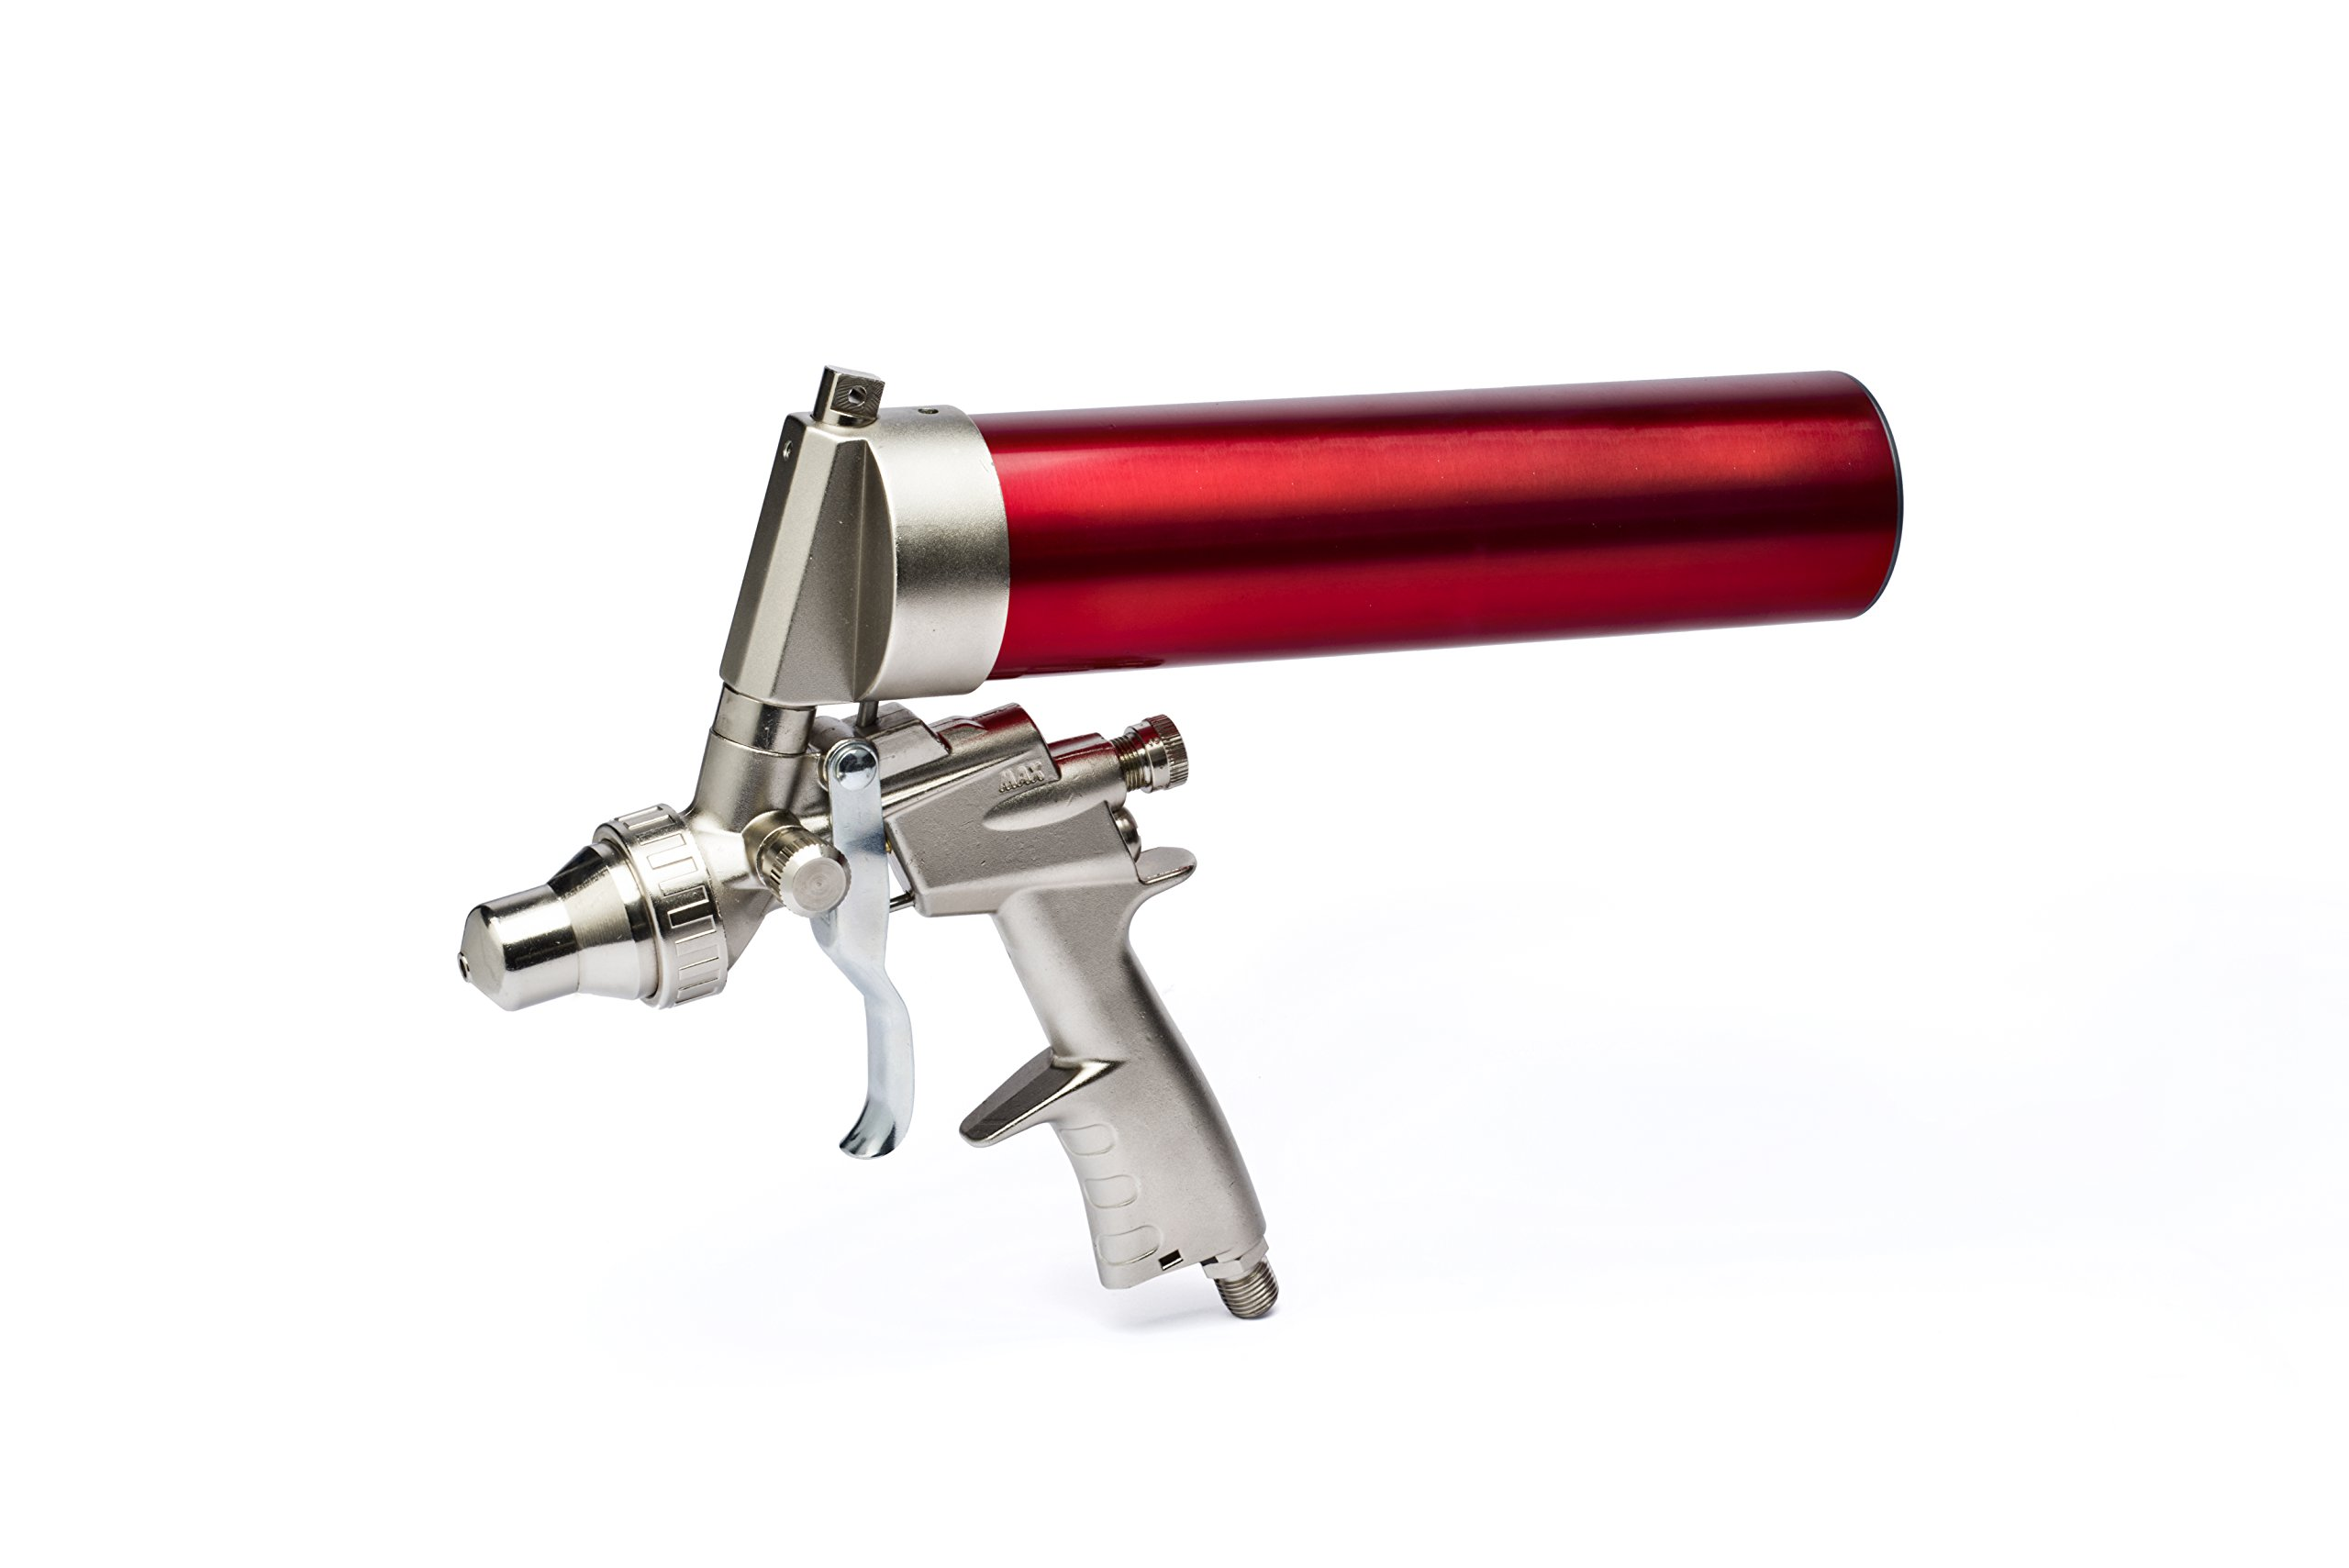 F1/SAM PNEUMATIC GUN FOR SINGLE COMPONENT CARTRIDGES